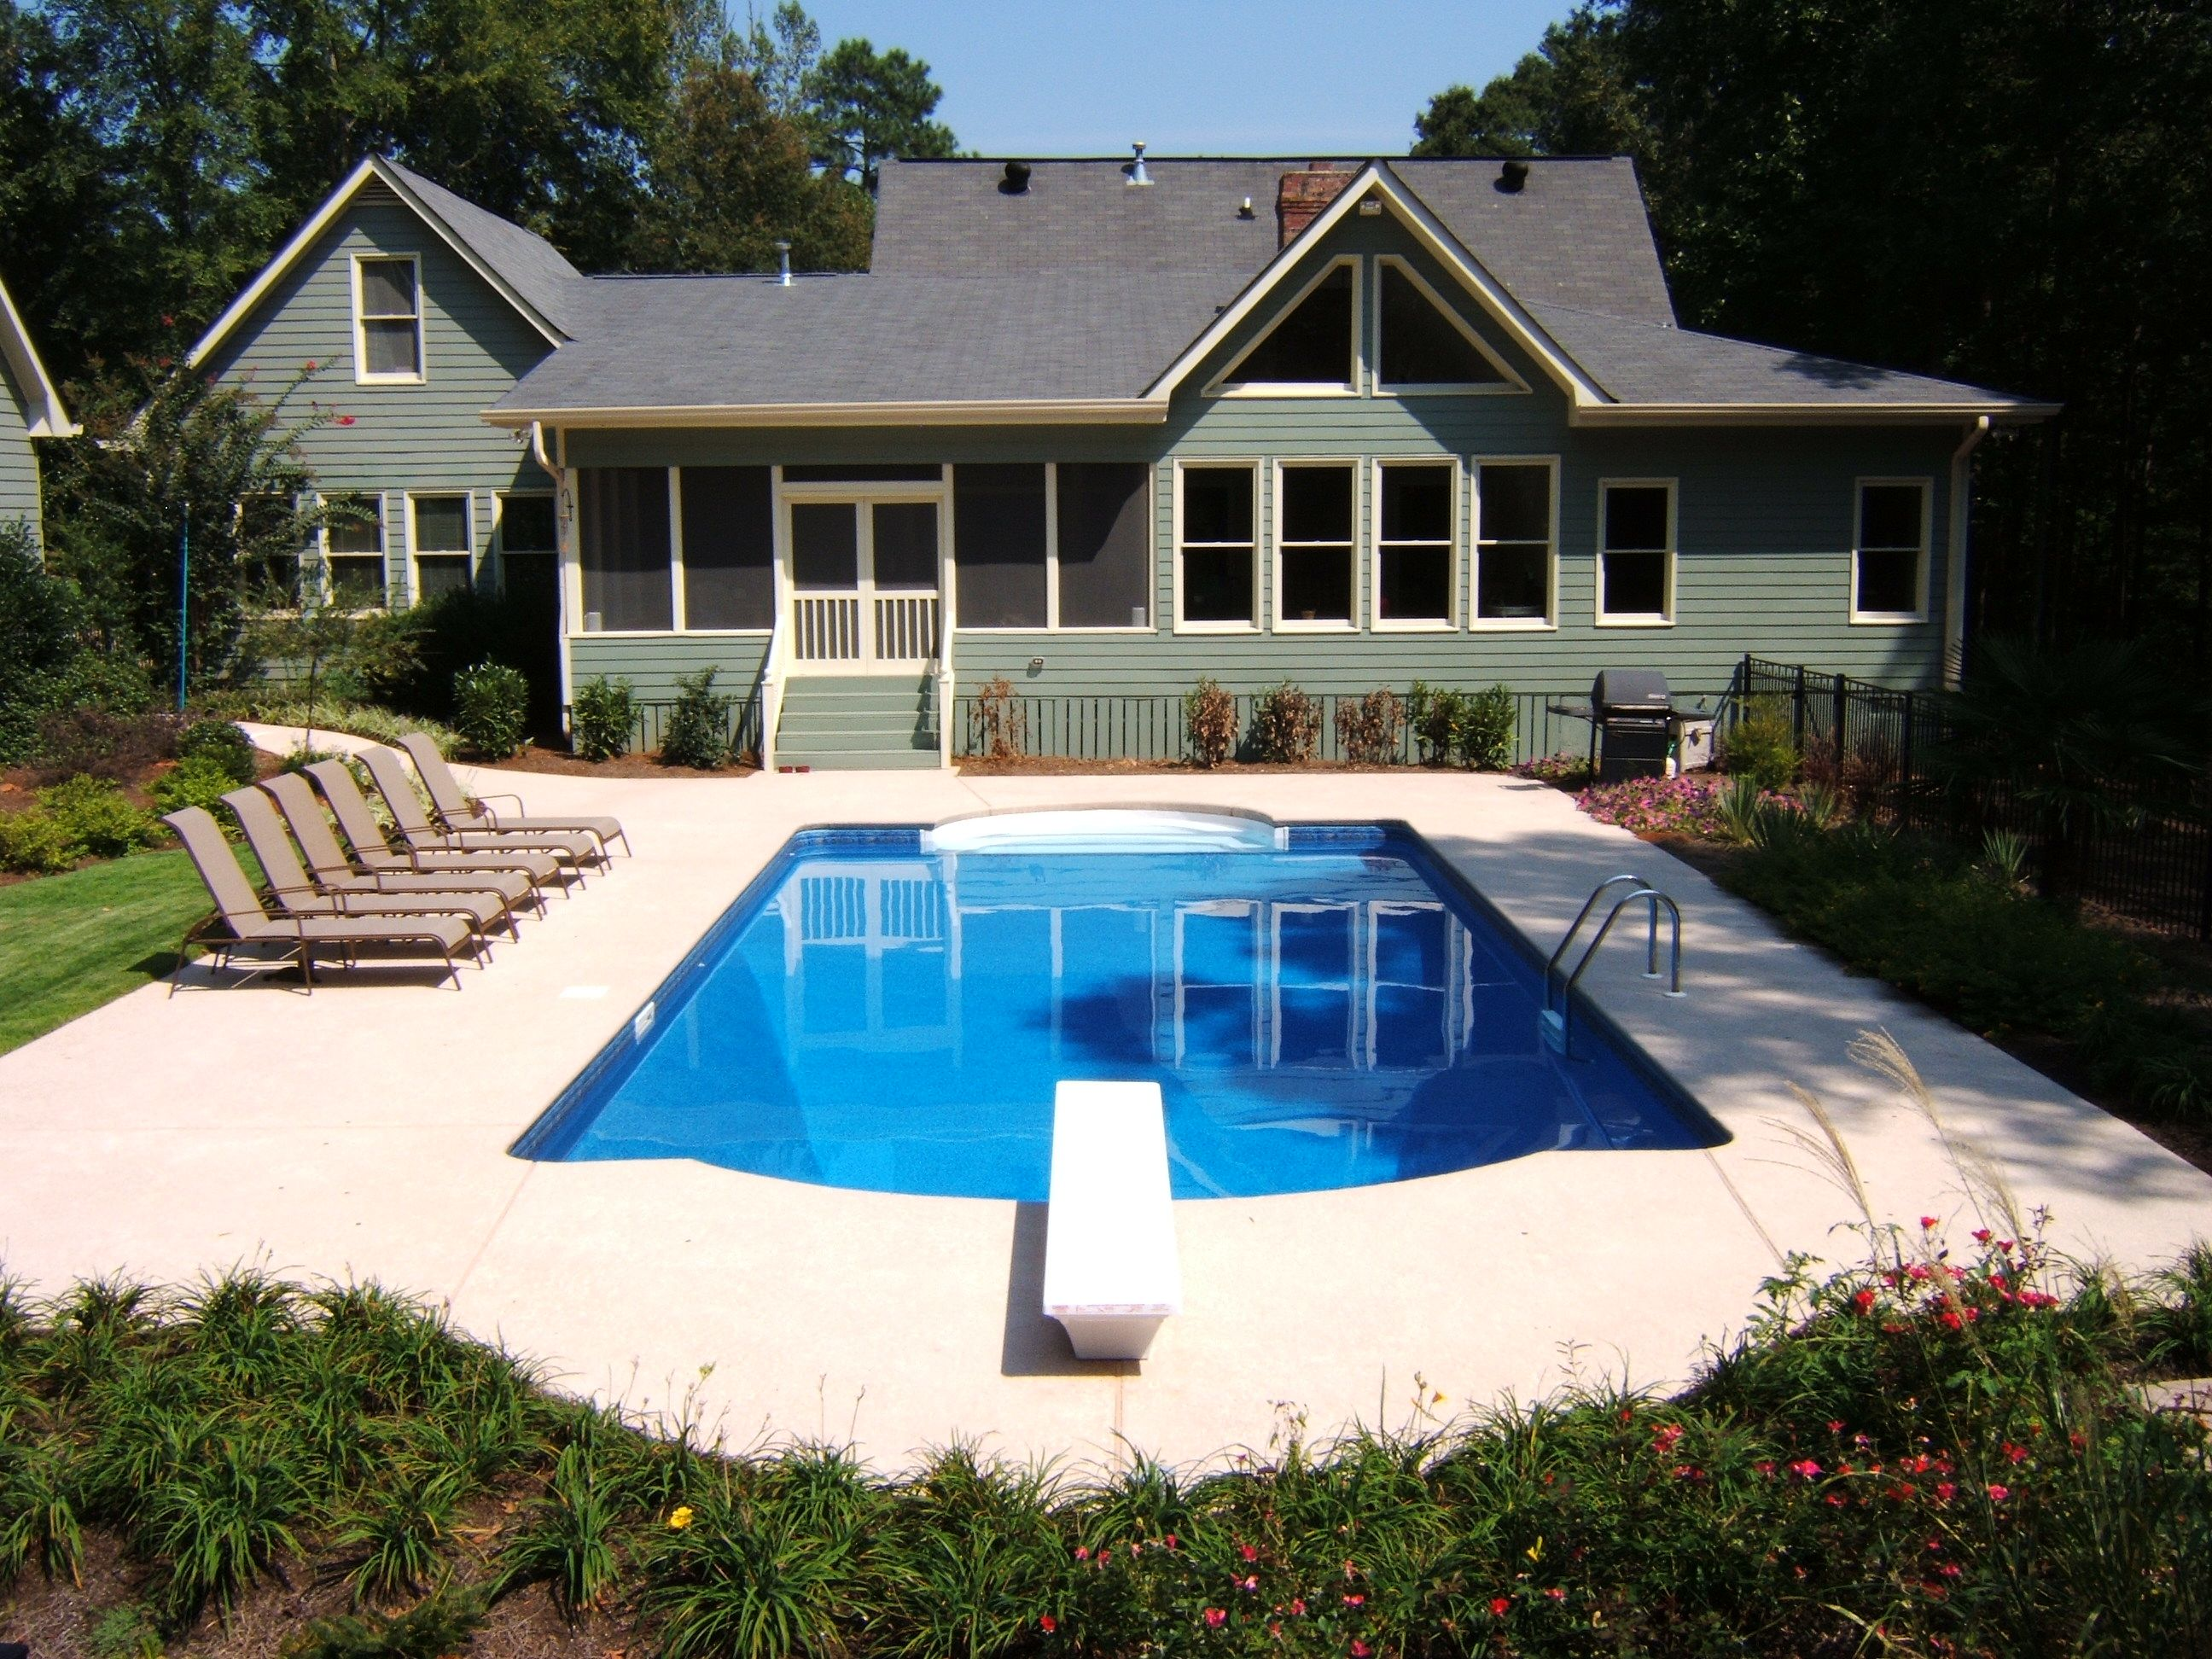 156 best pool and pool house images on pinterest pool ideas